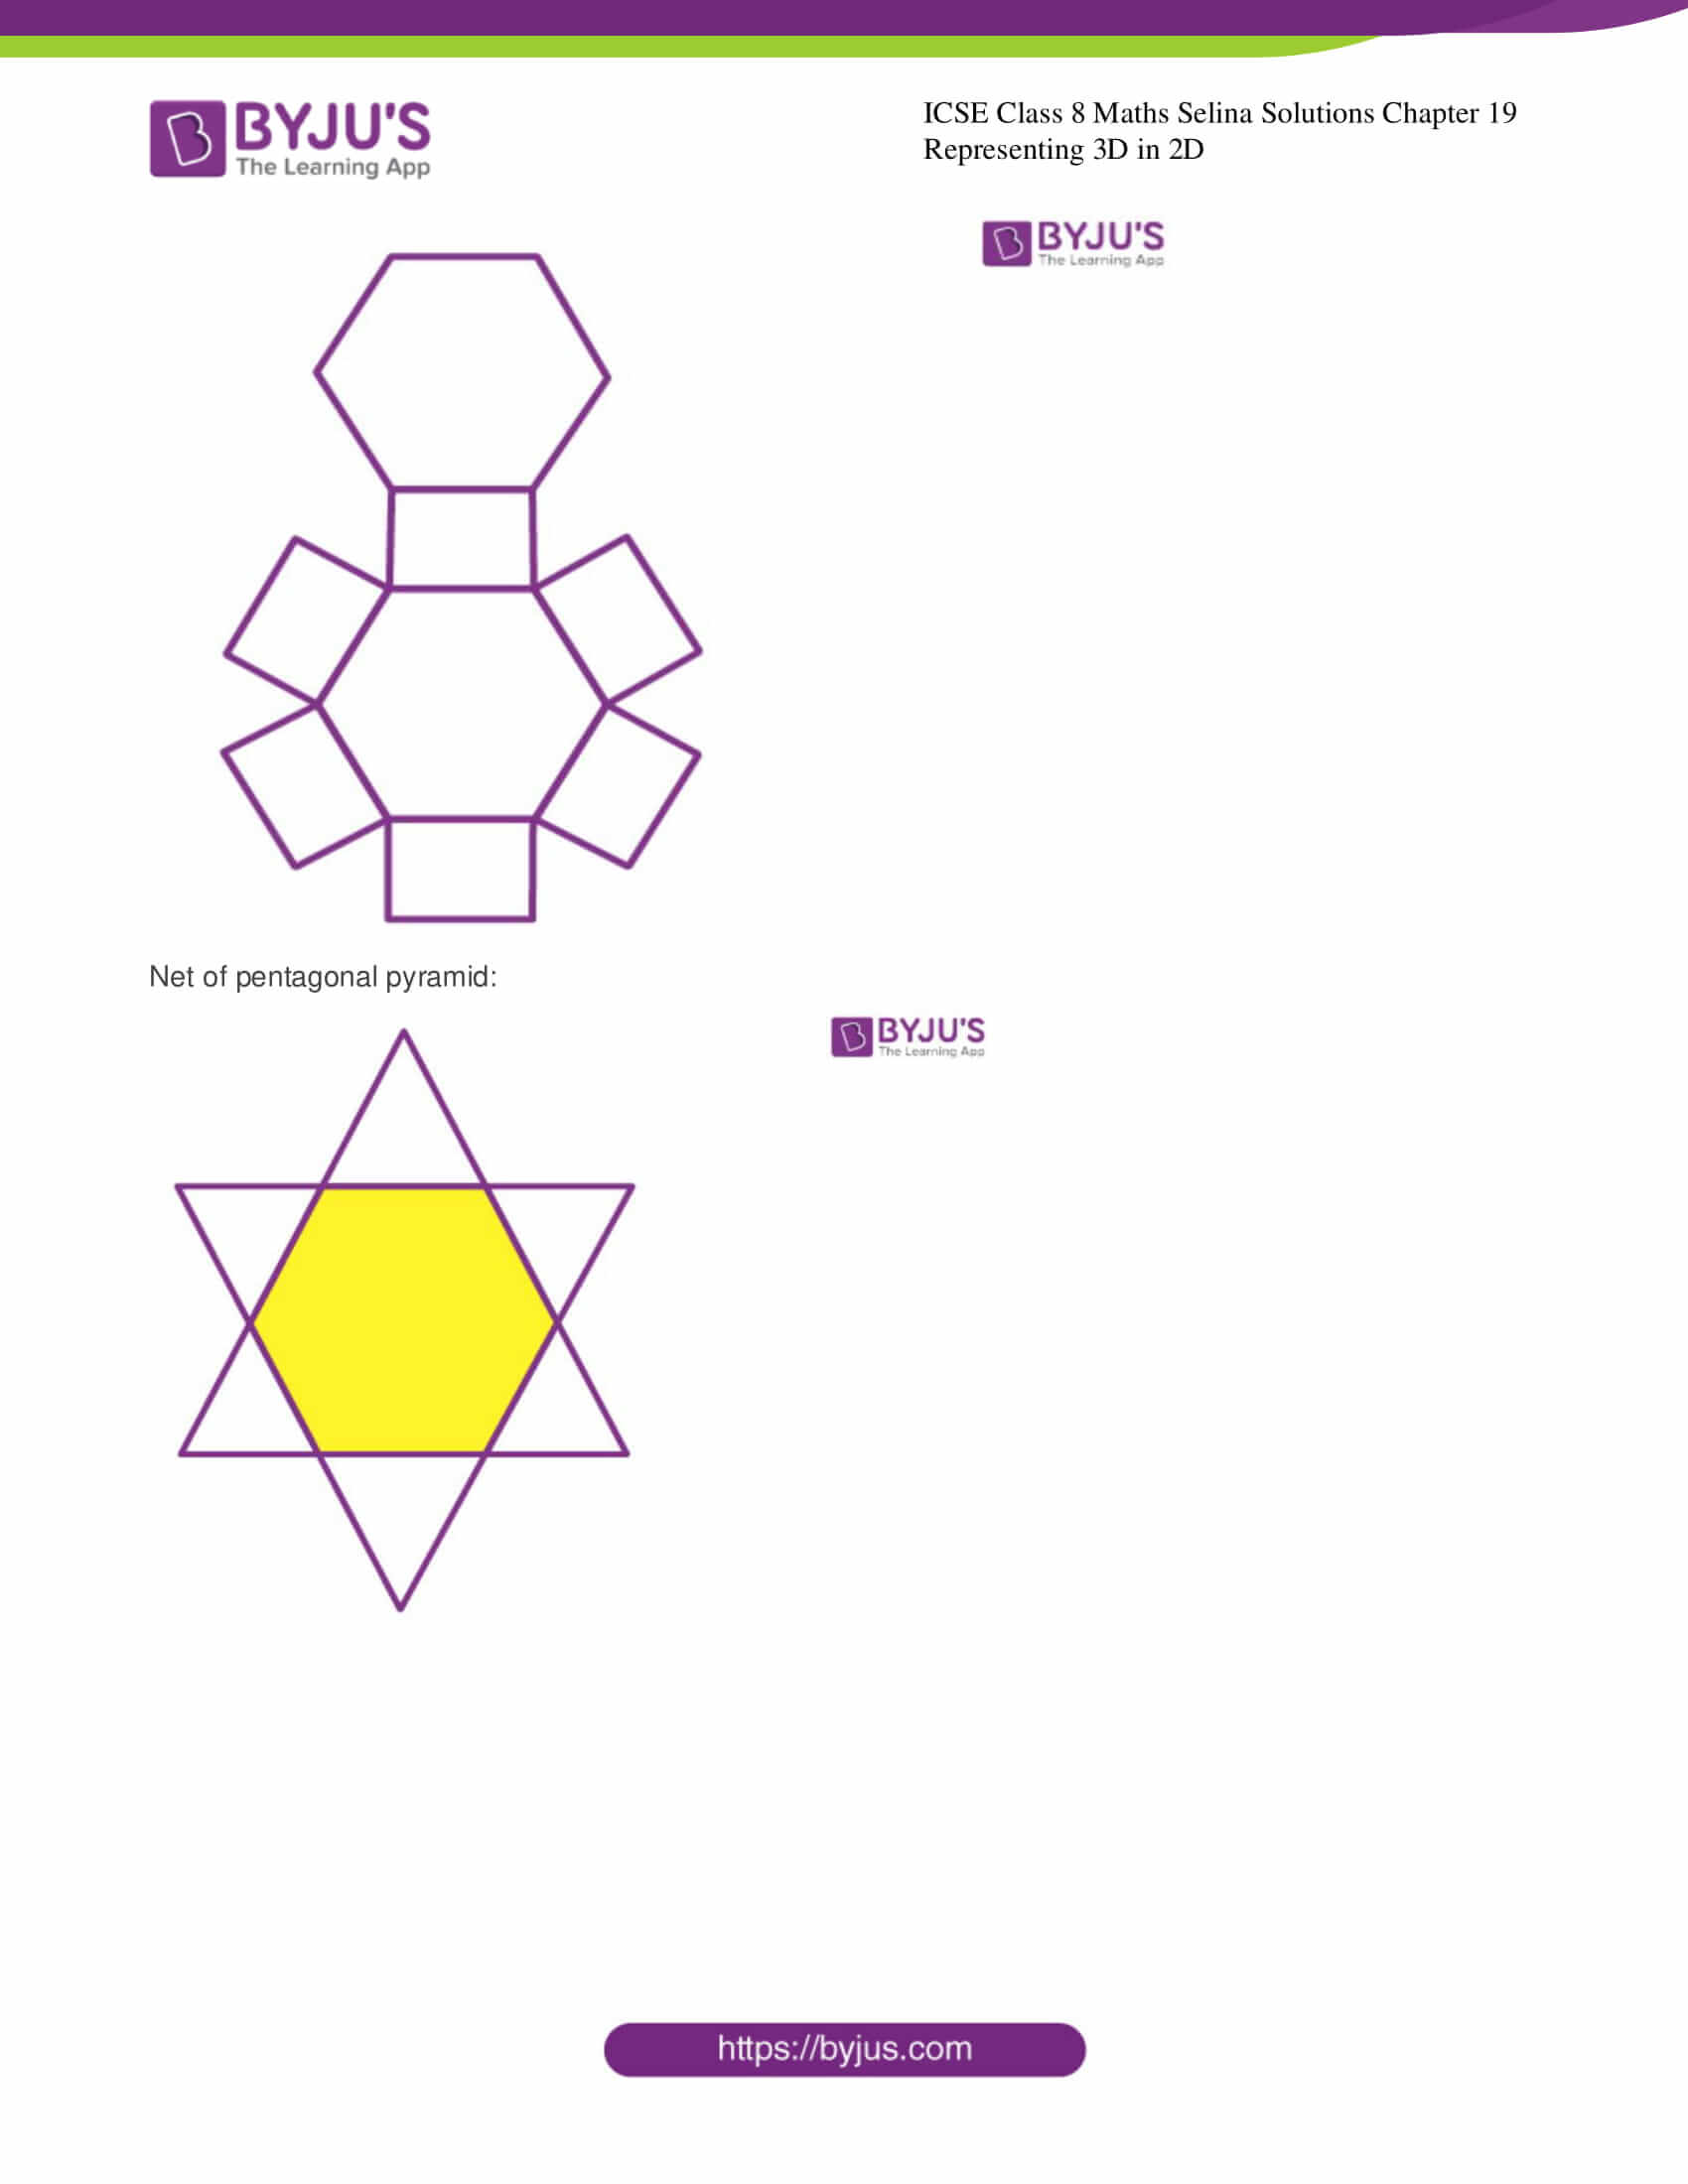 icse class 8 maths may3 selina solutions chapter 19 representing 3d in 2d 9